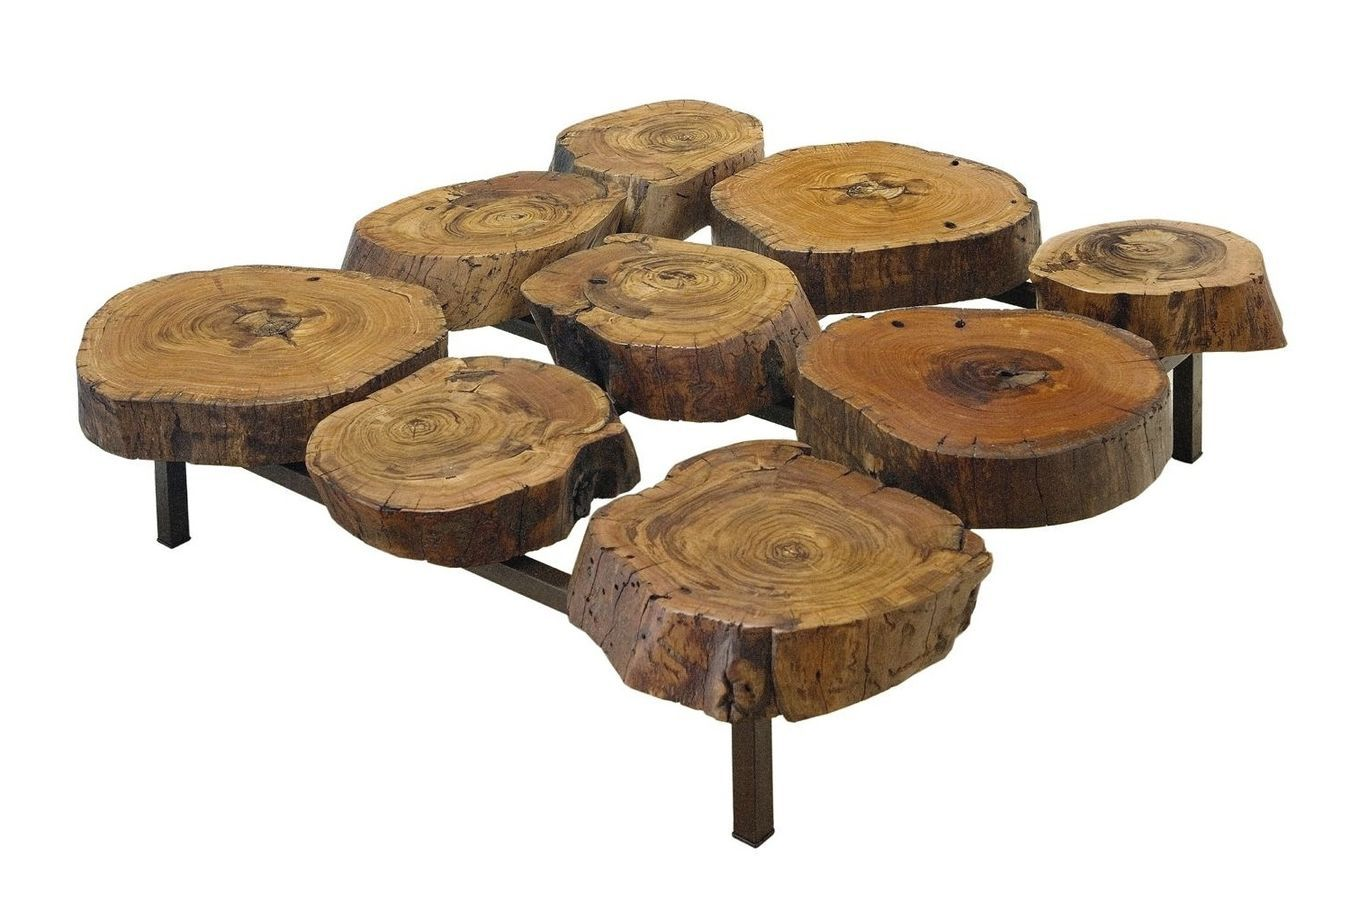 Amazing Contemporary Coffee Table In Reclaimed Wood FATIA Rotsen Furniture